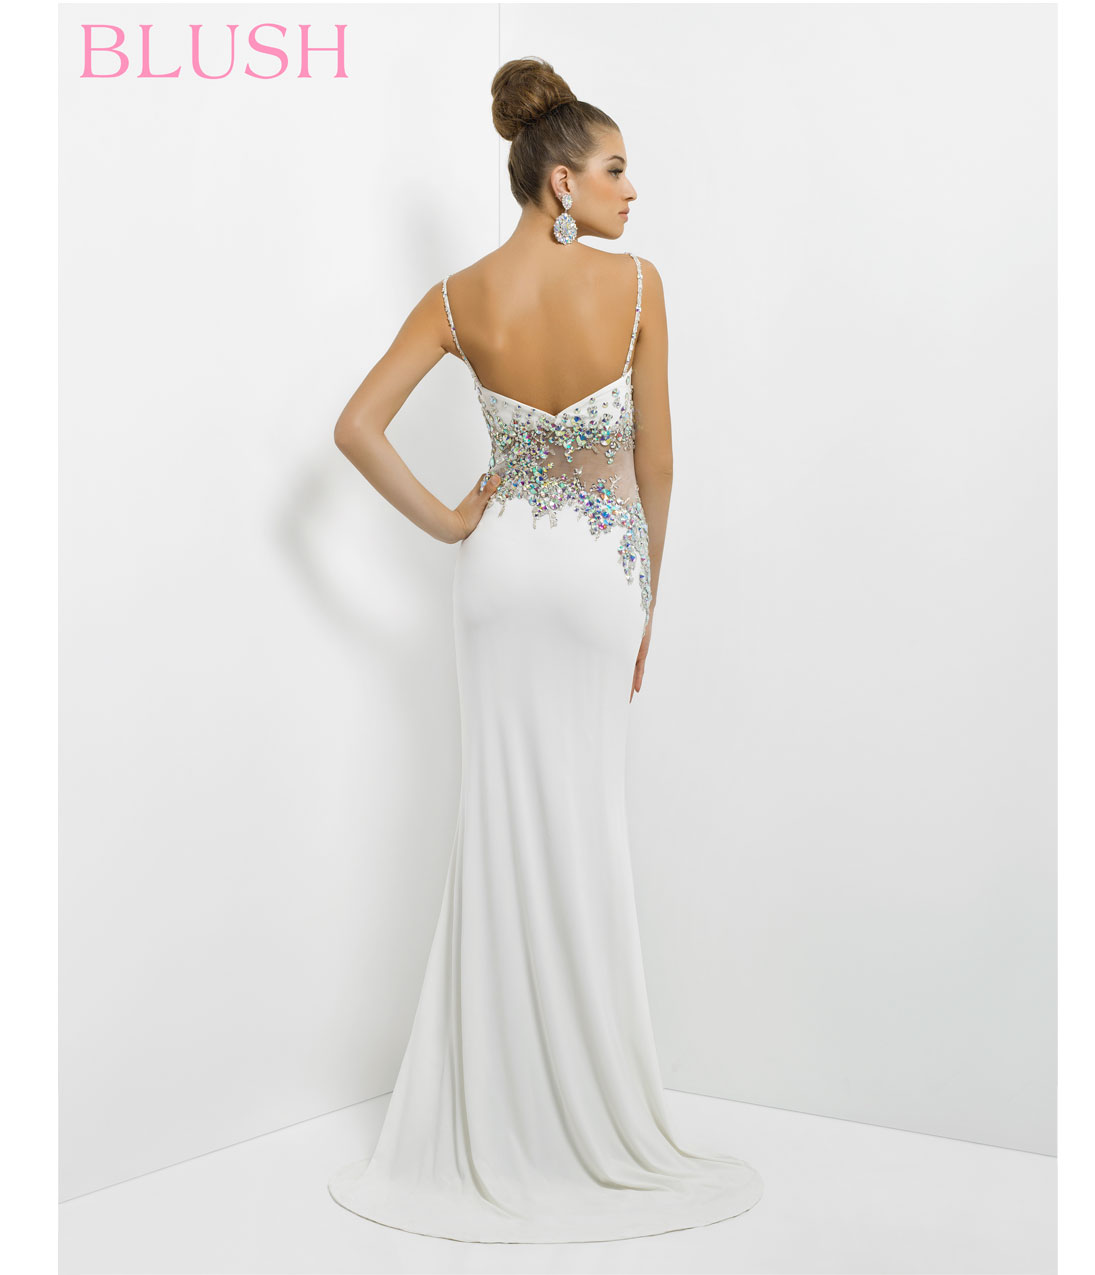 Sexy White Prom Dresses - Boutique Prom Dresses